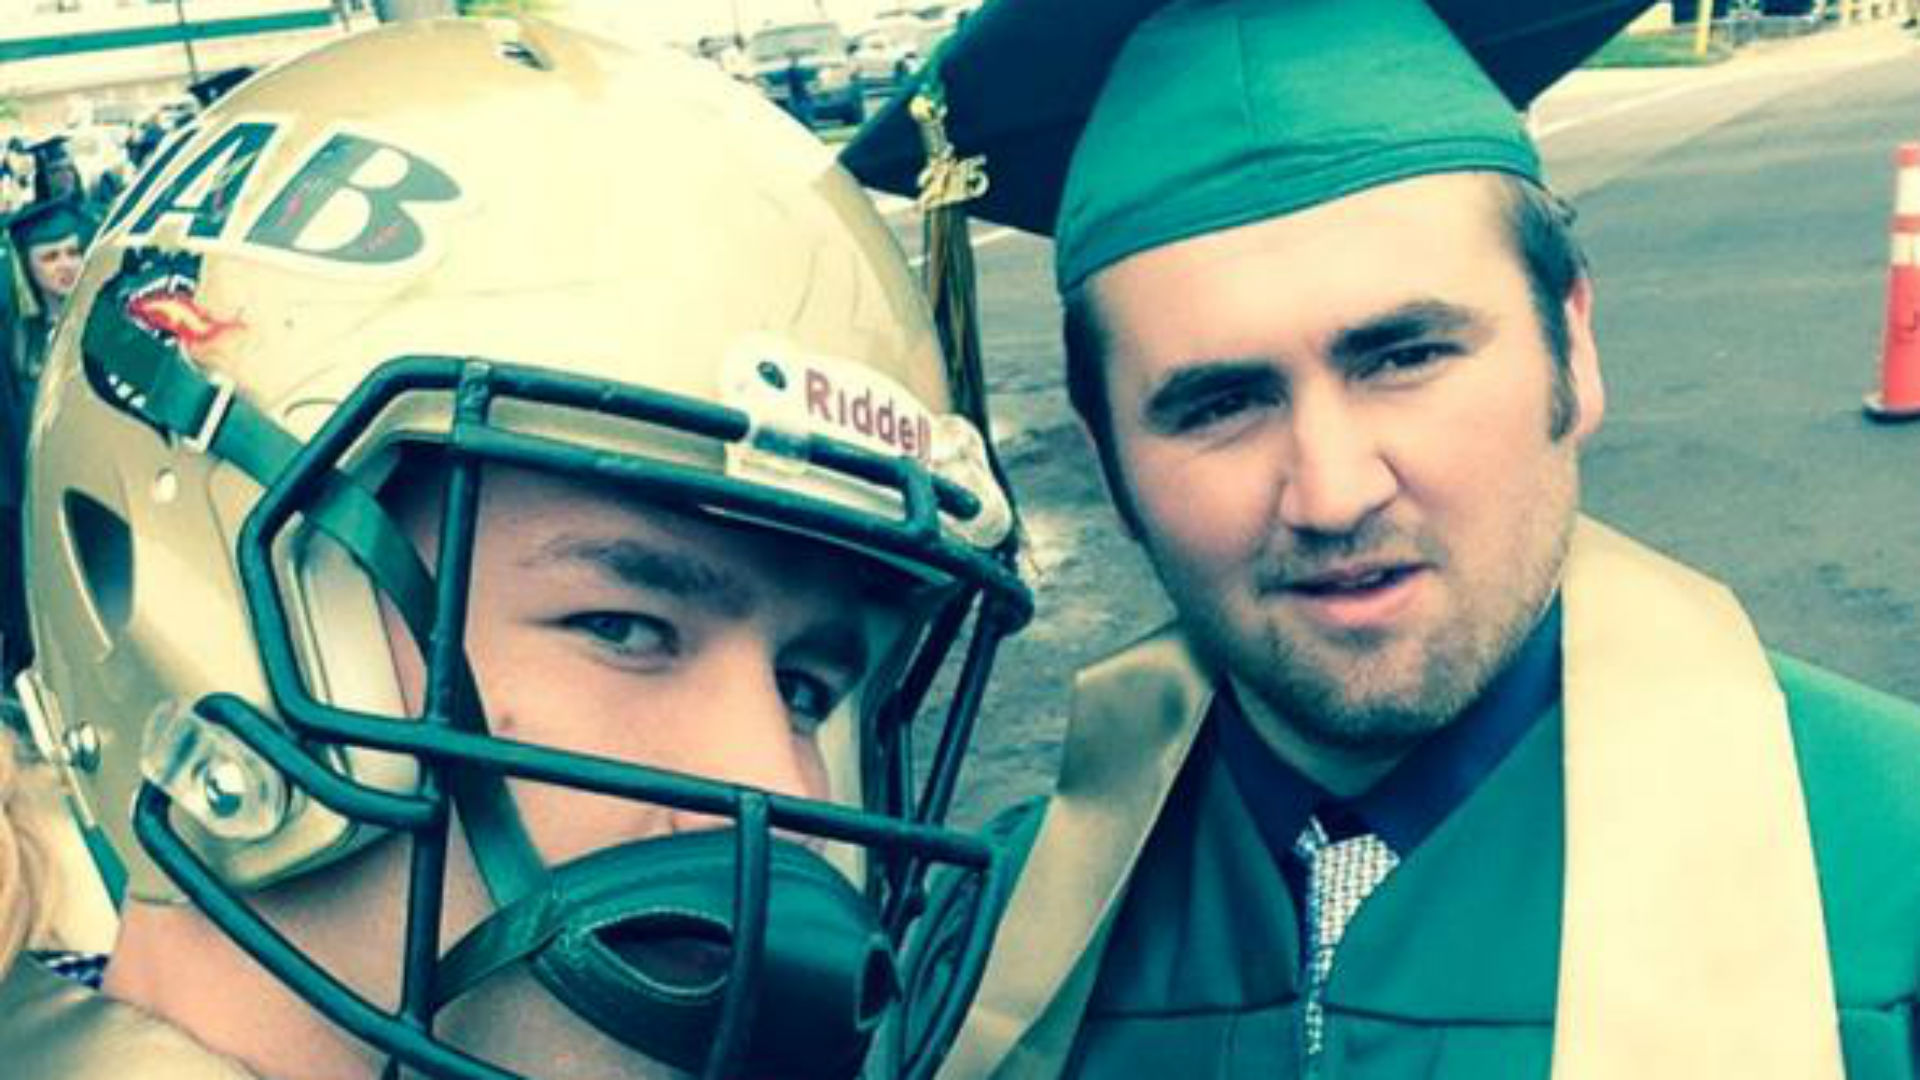 Former UAB linebacker protests by wearing helmet to graduation